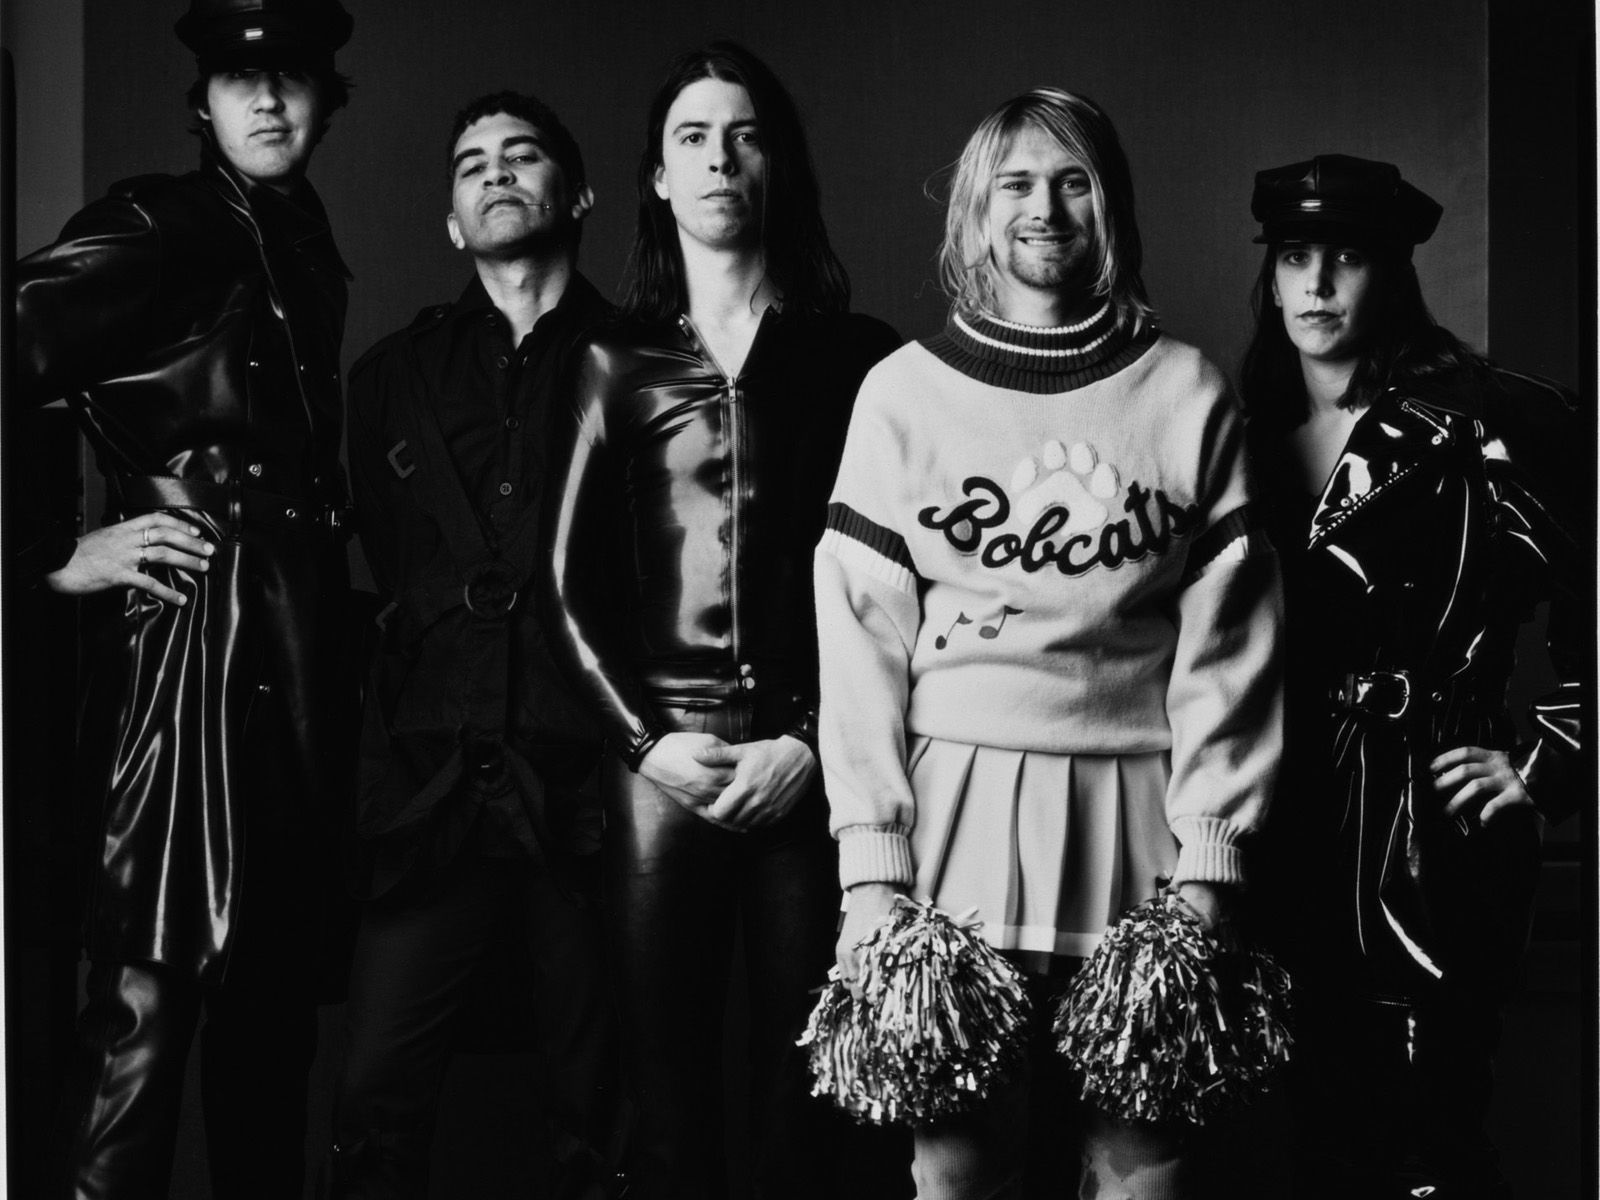 27 Jan 1994 — Nirvana members from left: Krist Novoselic, Pat Smear, Dave Grohl, Kurt Cobain and Melora Creager. — Image by (C) Mark Seliger/CORBIS OUTLINE